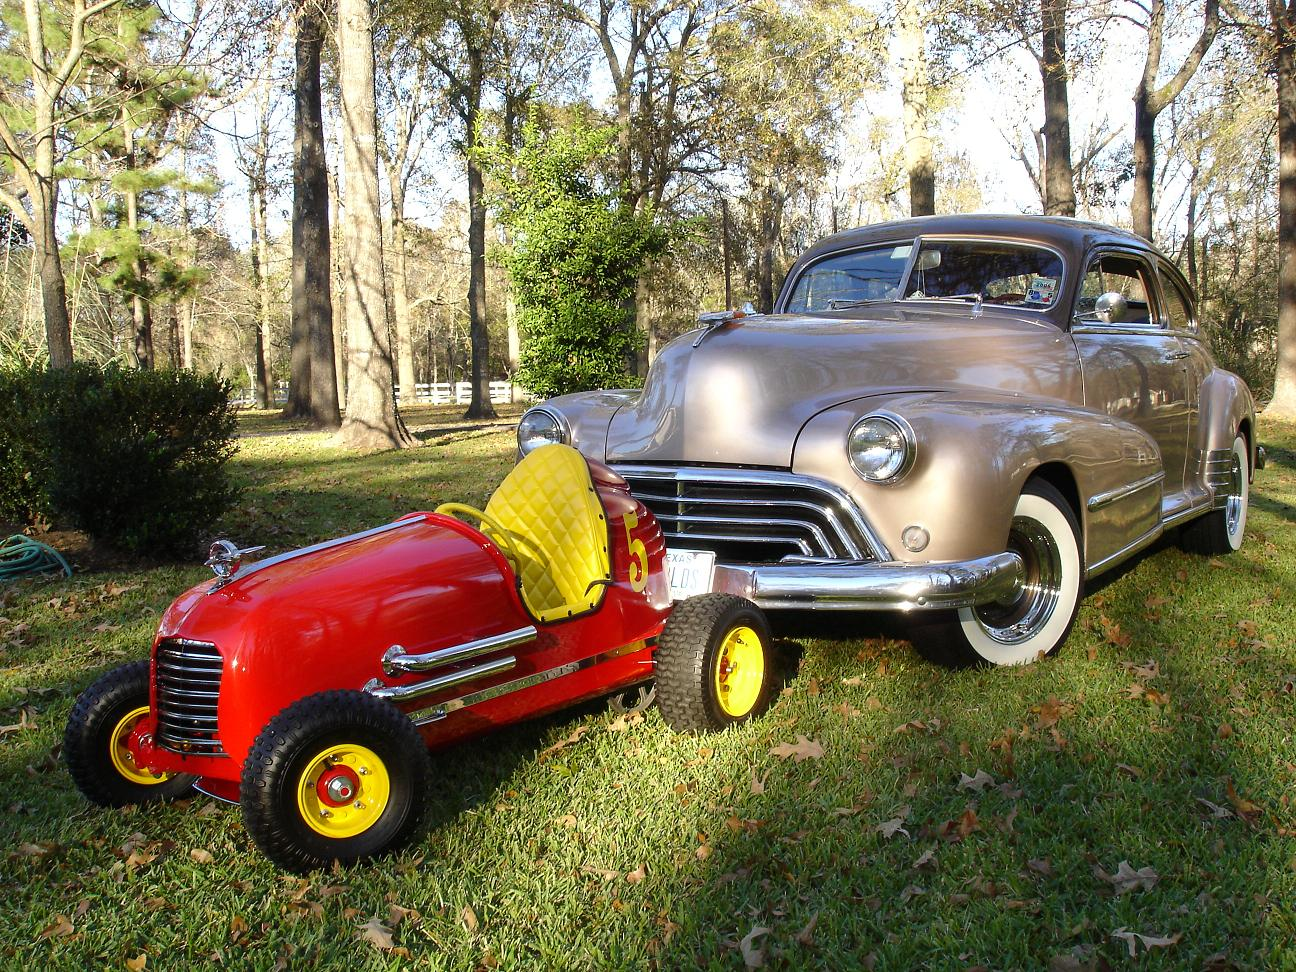 Click image for larger version  Name:After Restoration with my 48 Olds a.JPG Views:79 Size:420.5 KB ID:58852